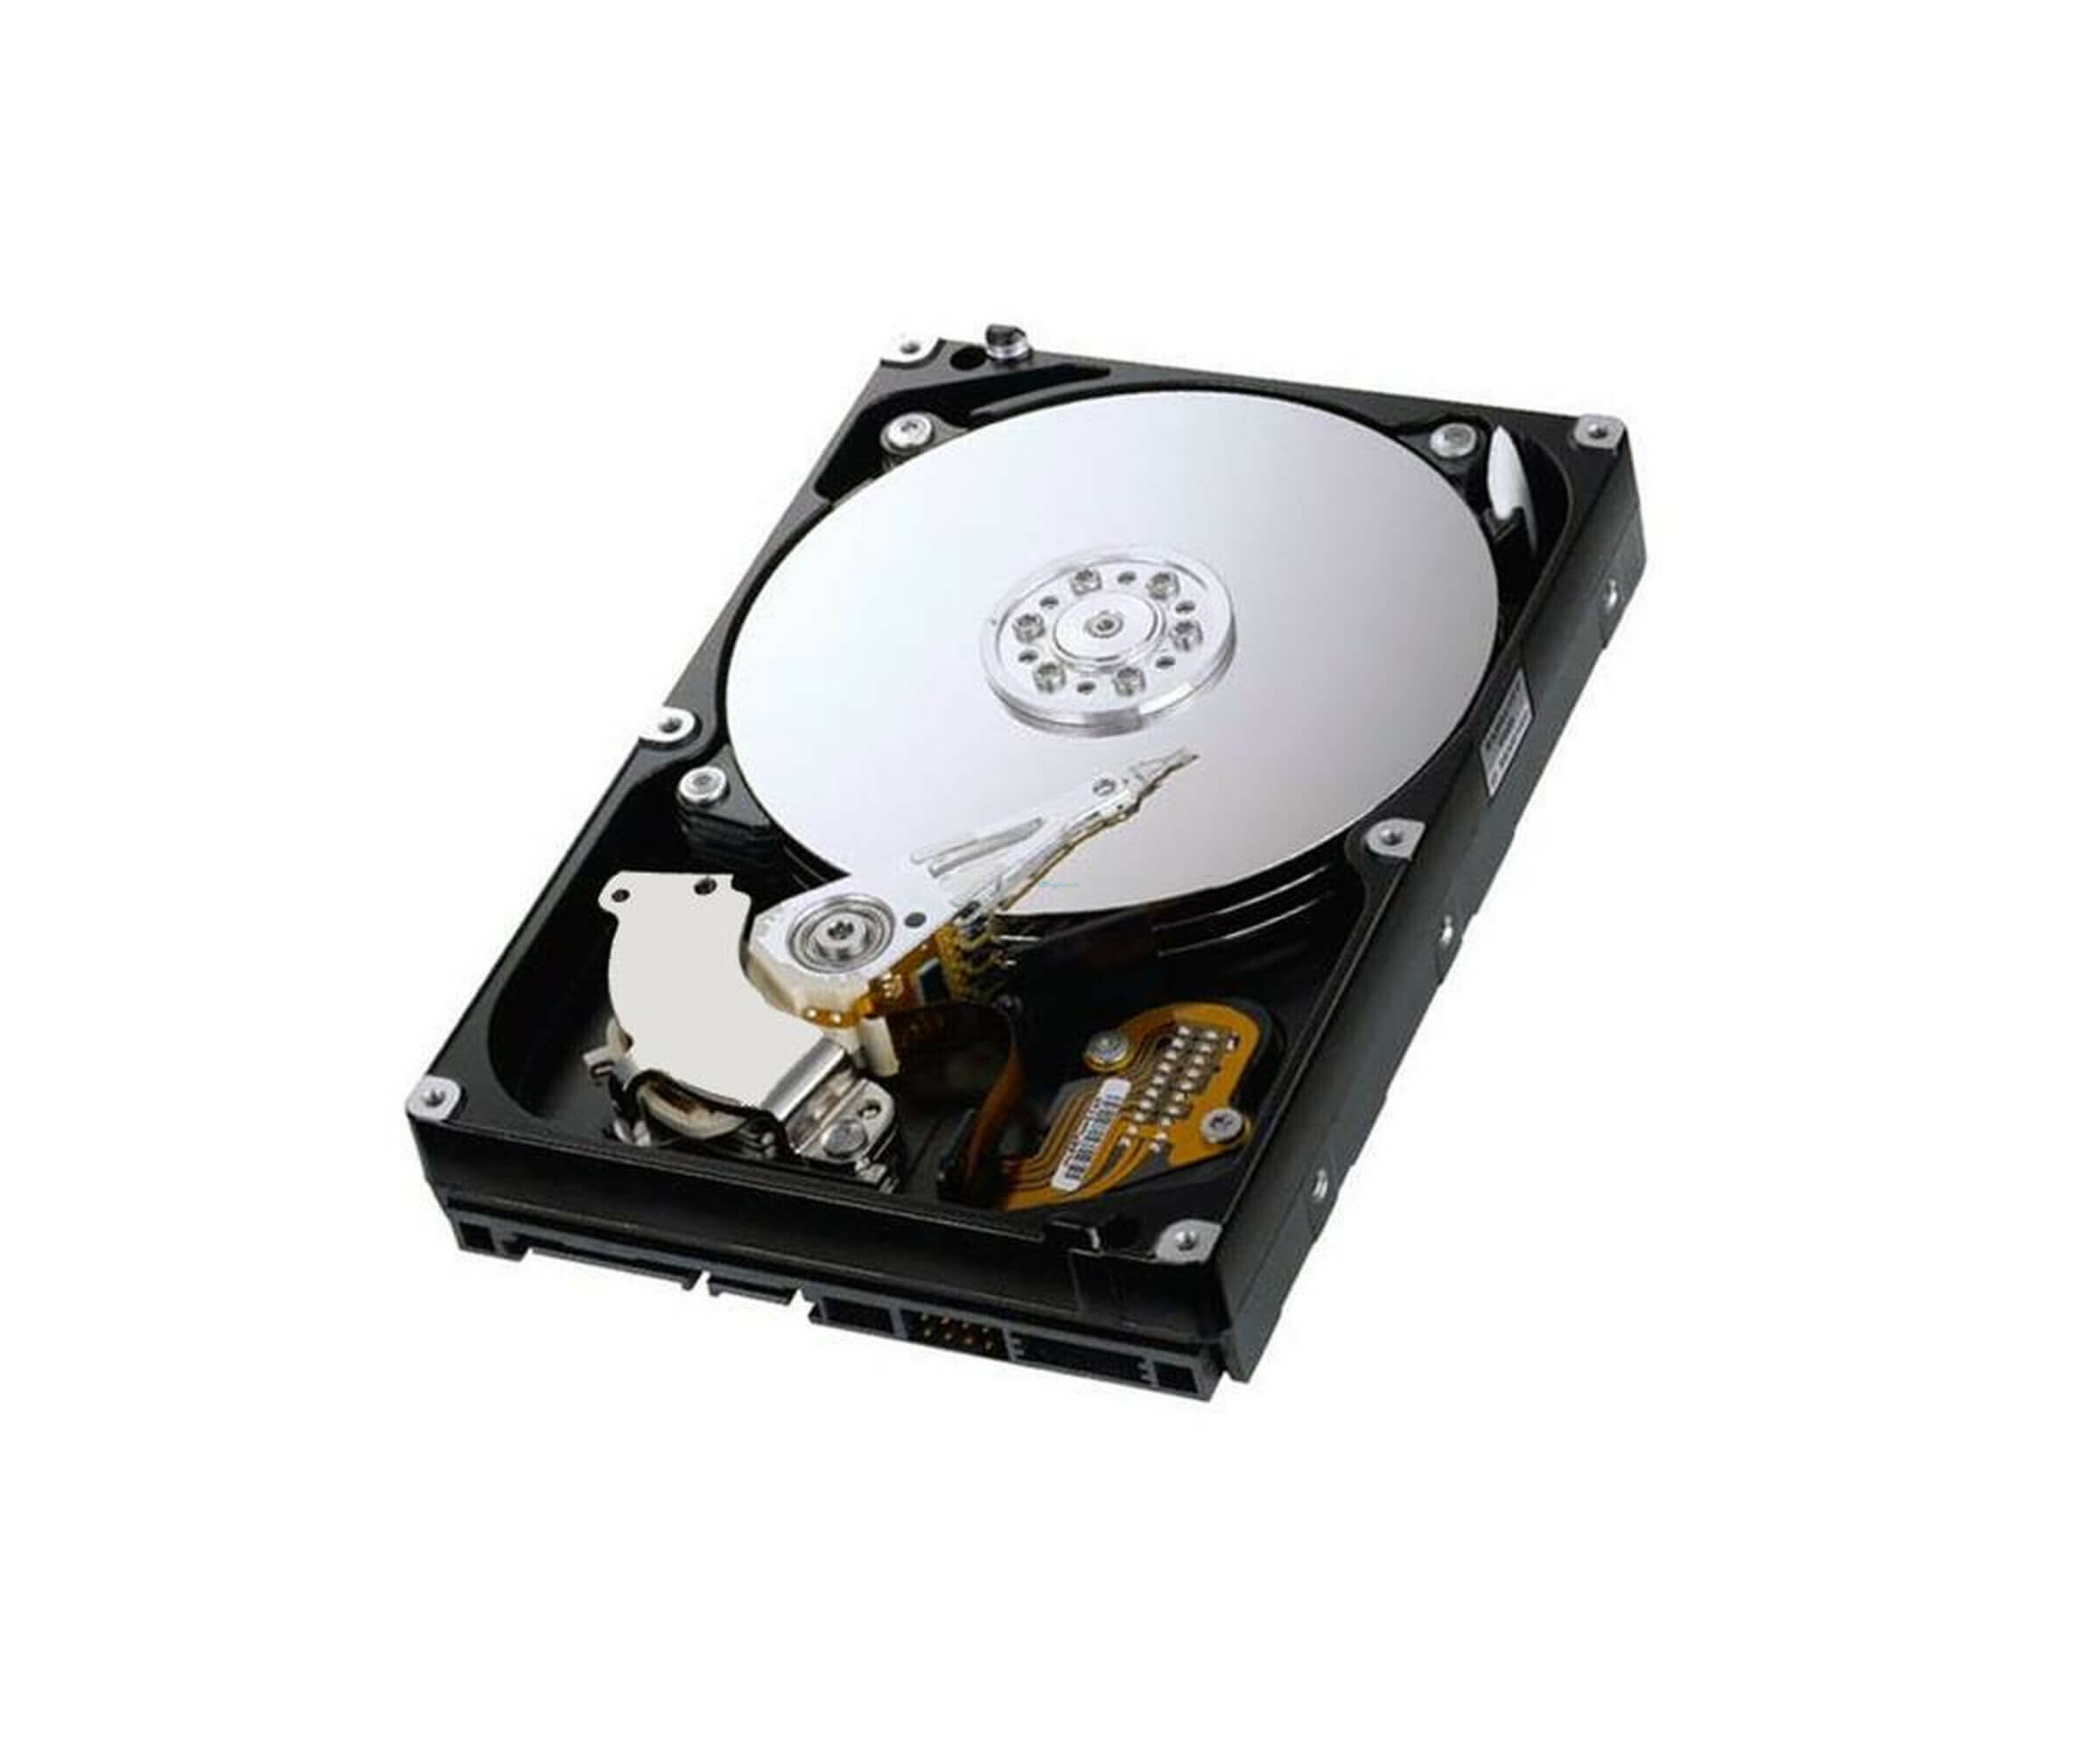 Seagate Barracuda 7200.10 ST3160815AS - Festplatte - 160 GB - 7200 rpm - 3.5 - SATA